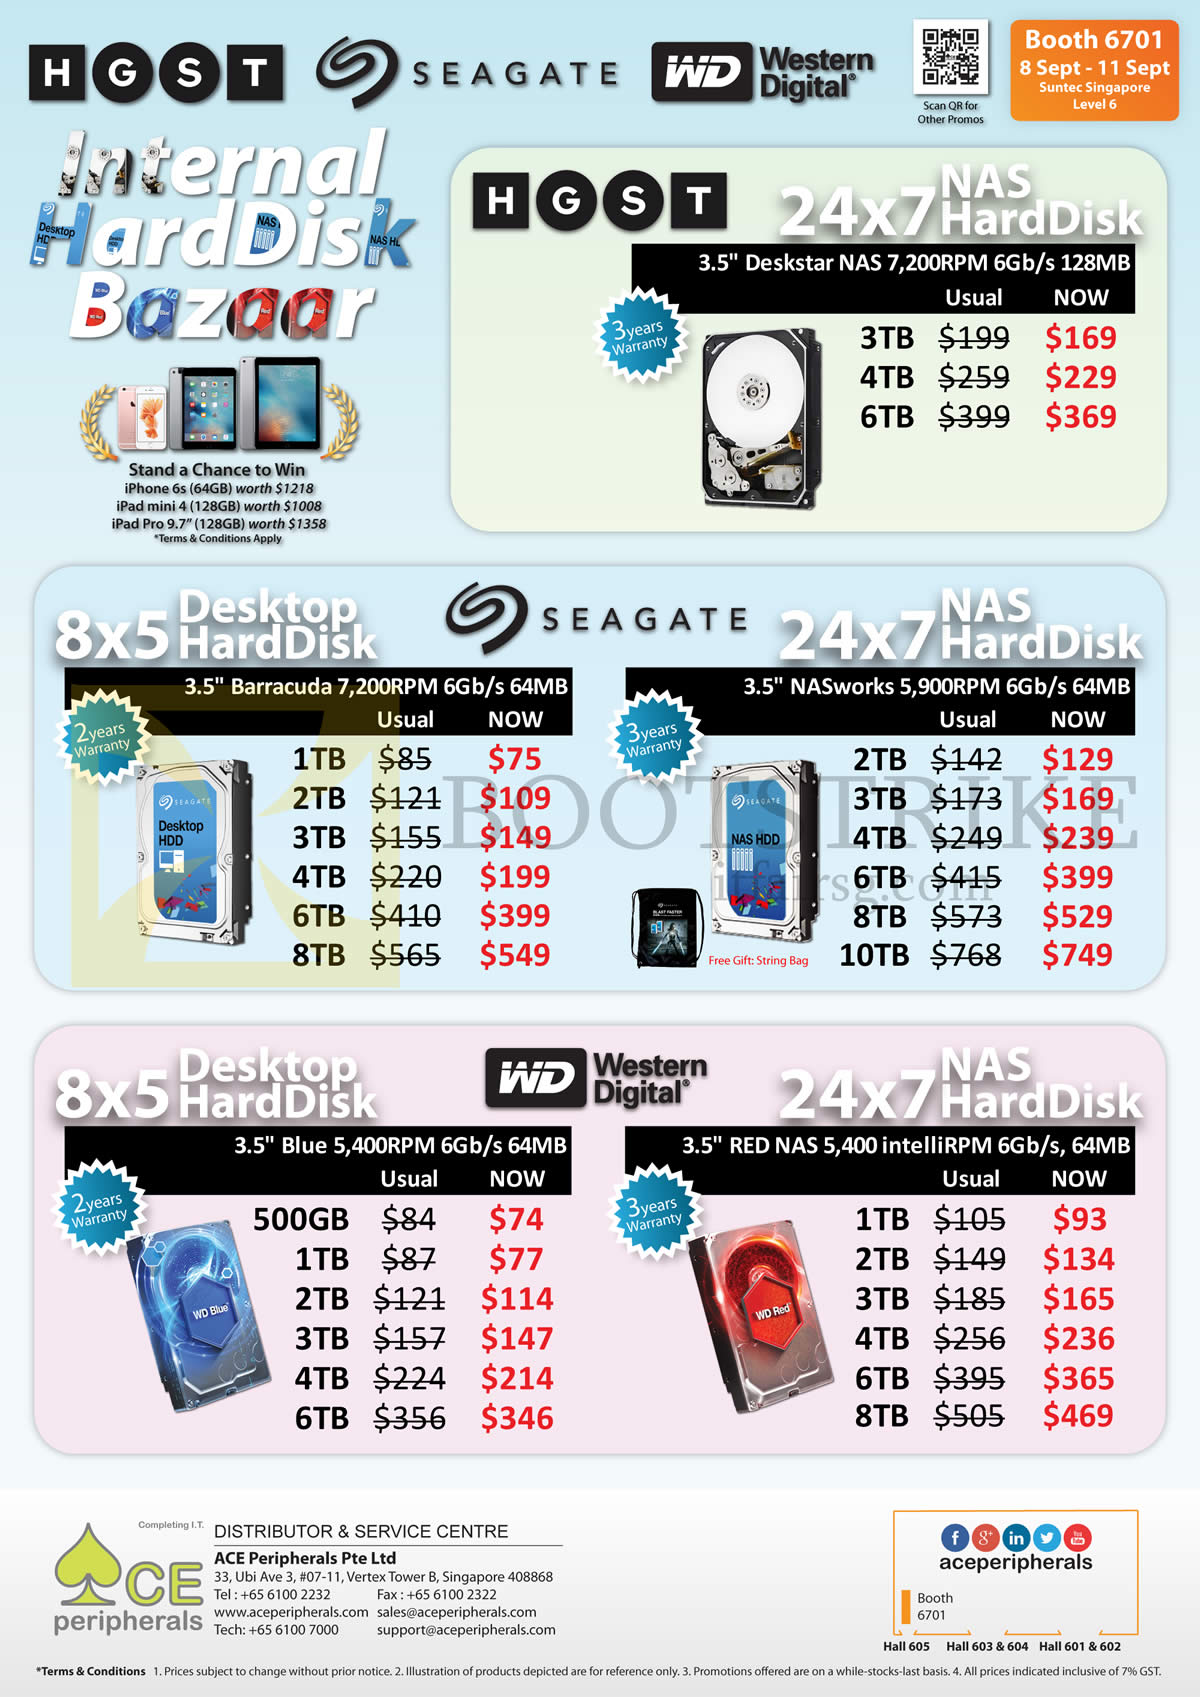 COMEX 2016 price list image brochure of Ace Peripherals NAS Internal Harddisk Seagate, HGST, Barracuda, WD Blue, Red, HGST Deskstar, 500GB, 1TB, 2TB, 3TB, 4TB, 6TB, 8TB